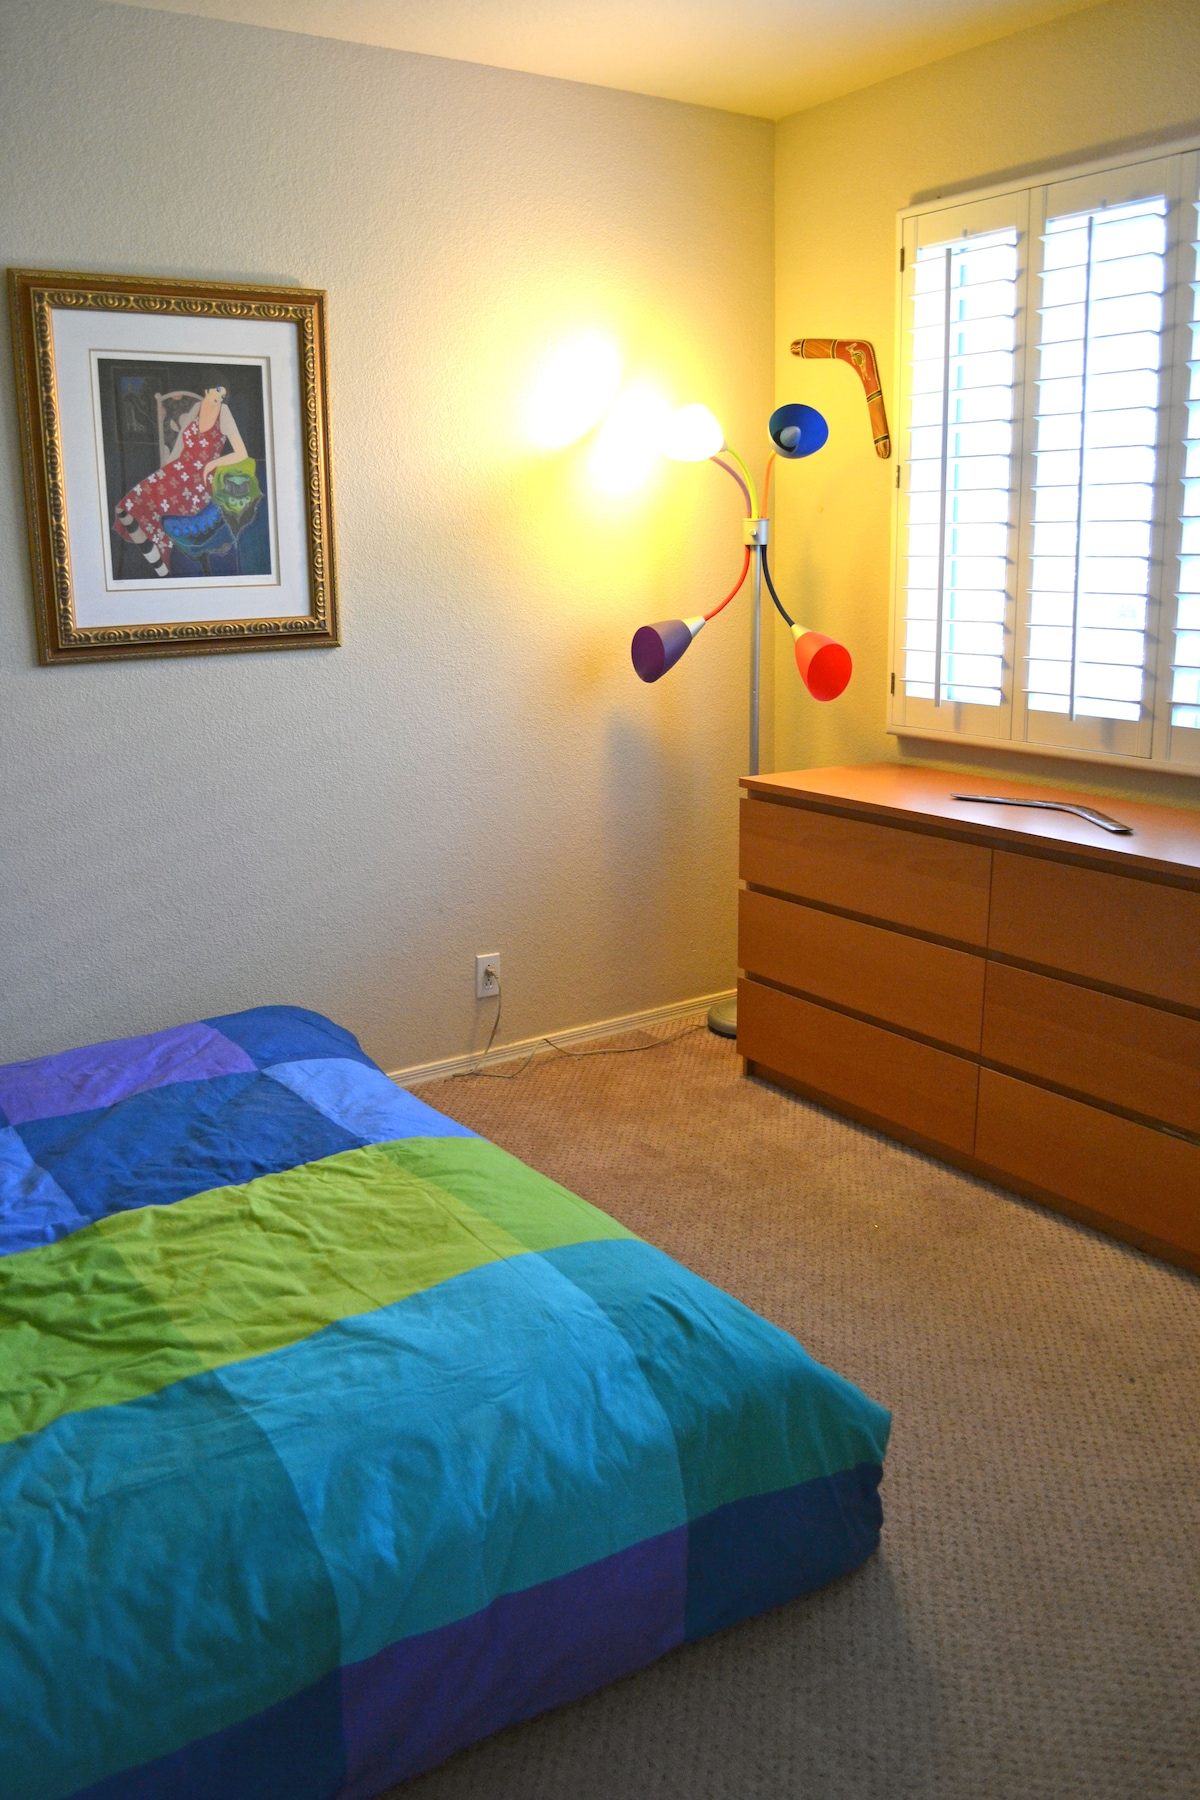 This is the bedroom available.